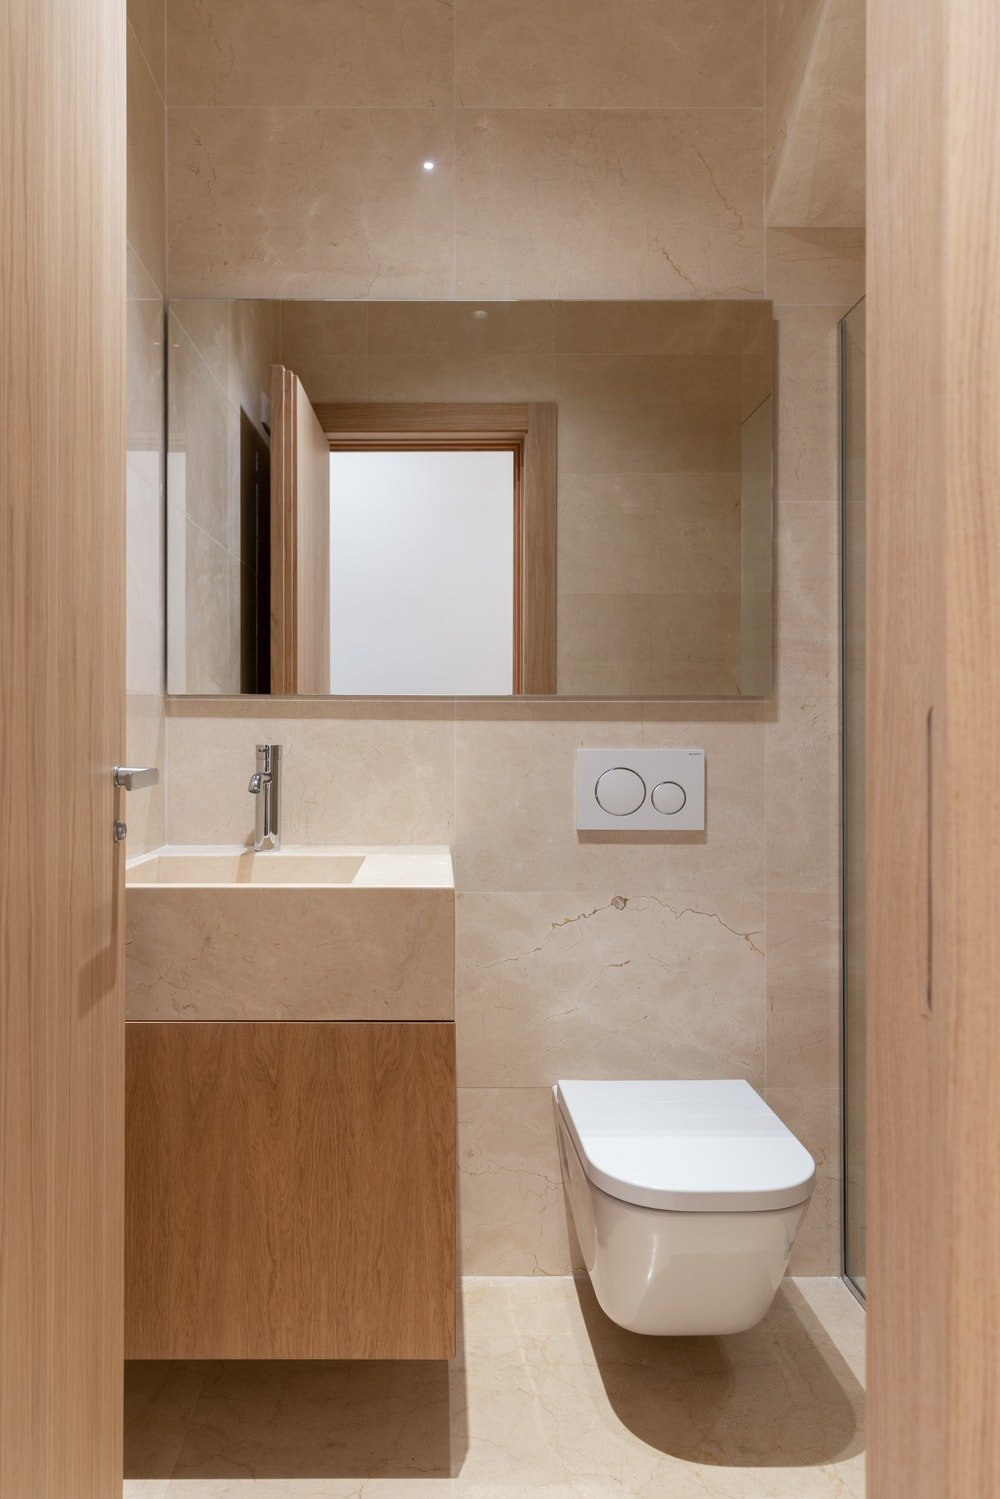 This is charming and simple bathroom with a white modern toilet to match the sink housed in a wooden vanity. This toilet is topped with a large wall-mounted mirror.